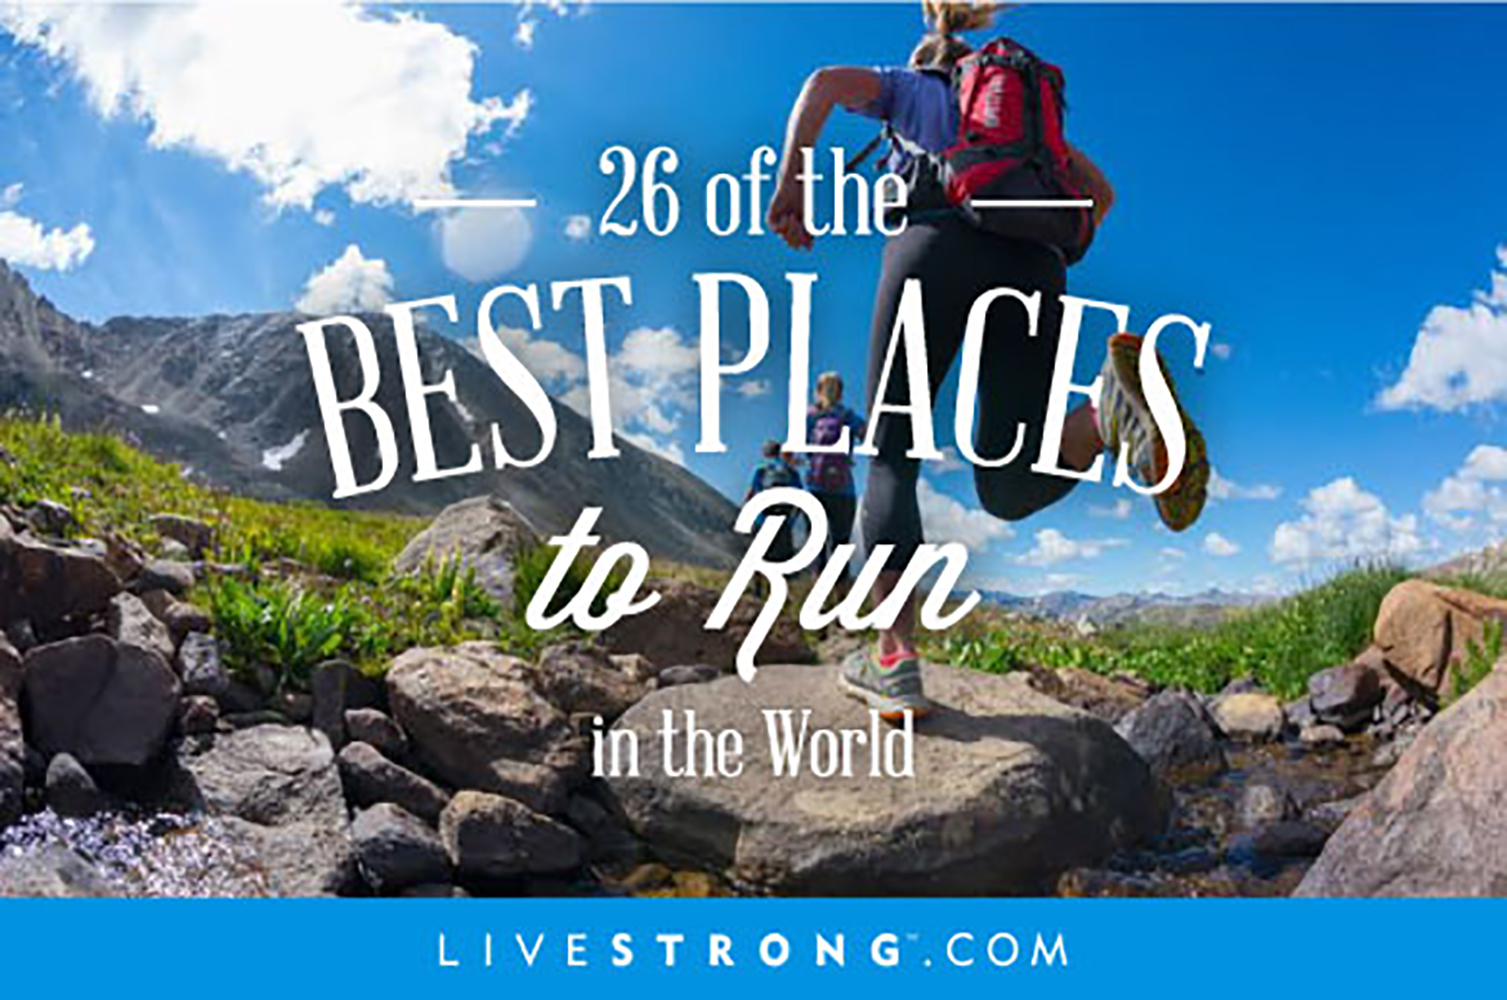 Of The Best Places To Run In The World LIVESTRONGCOM - Run around the world 13 best places to run a marathon